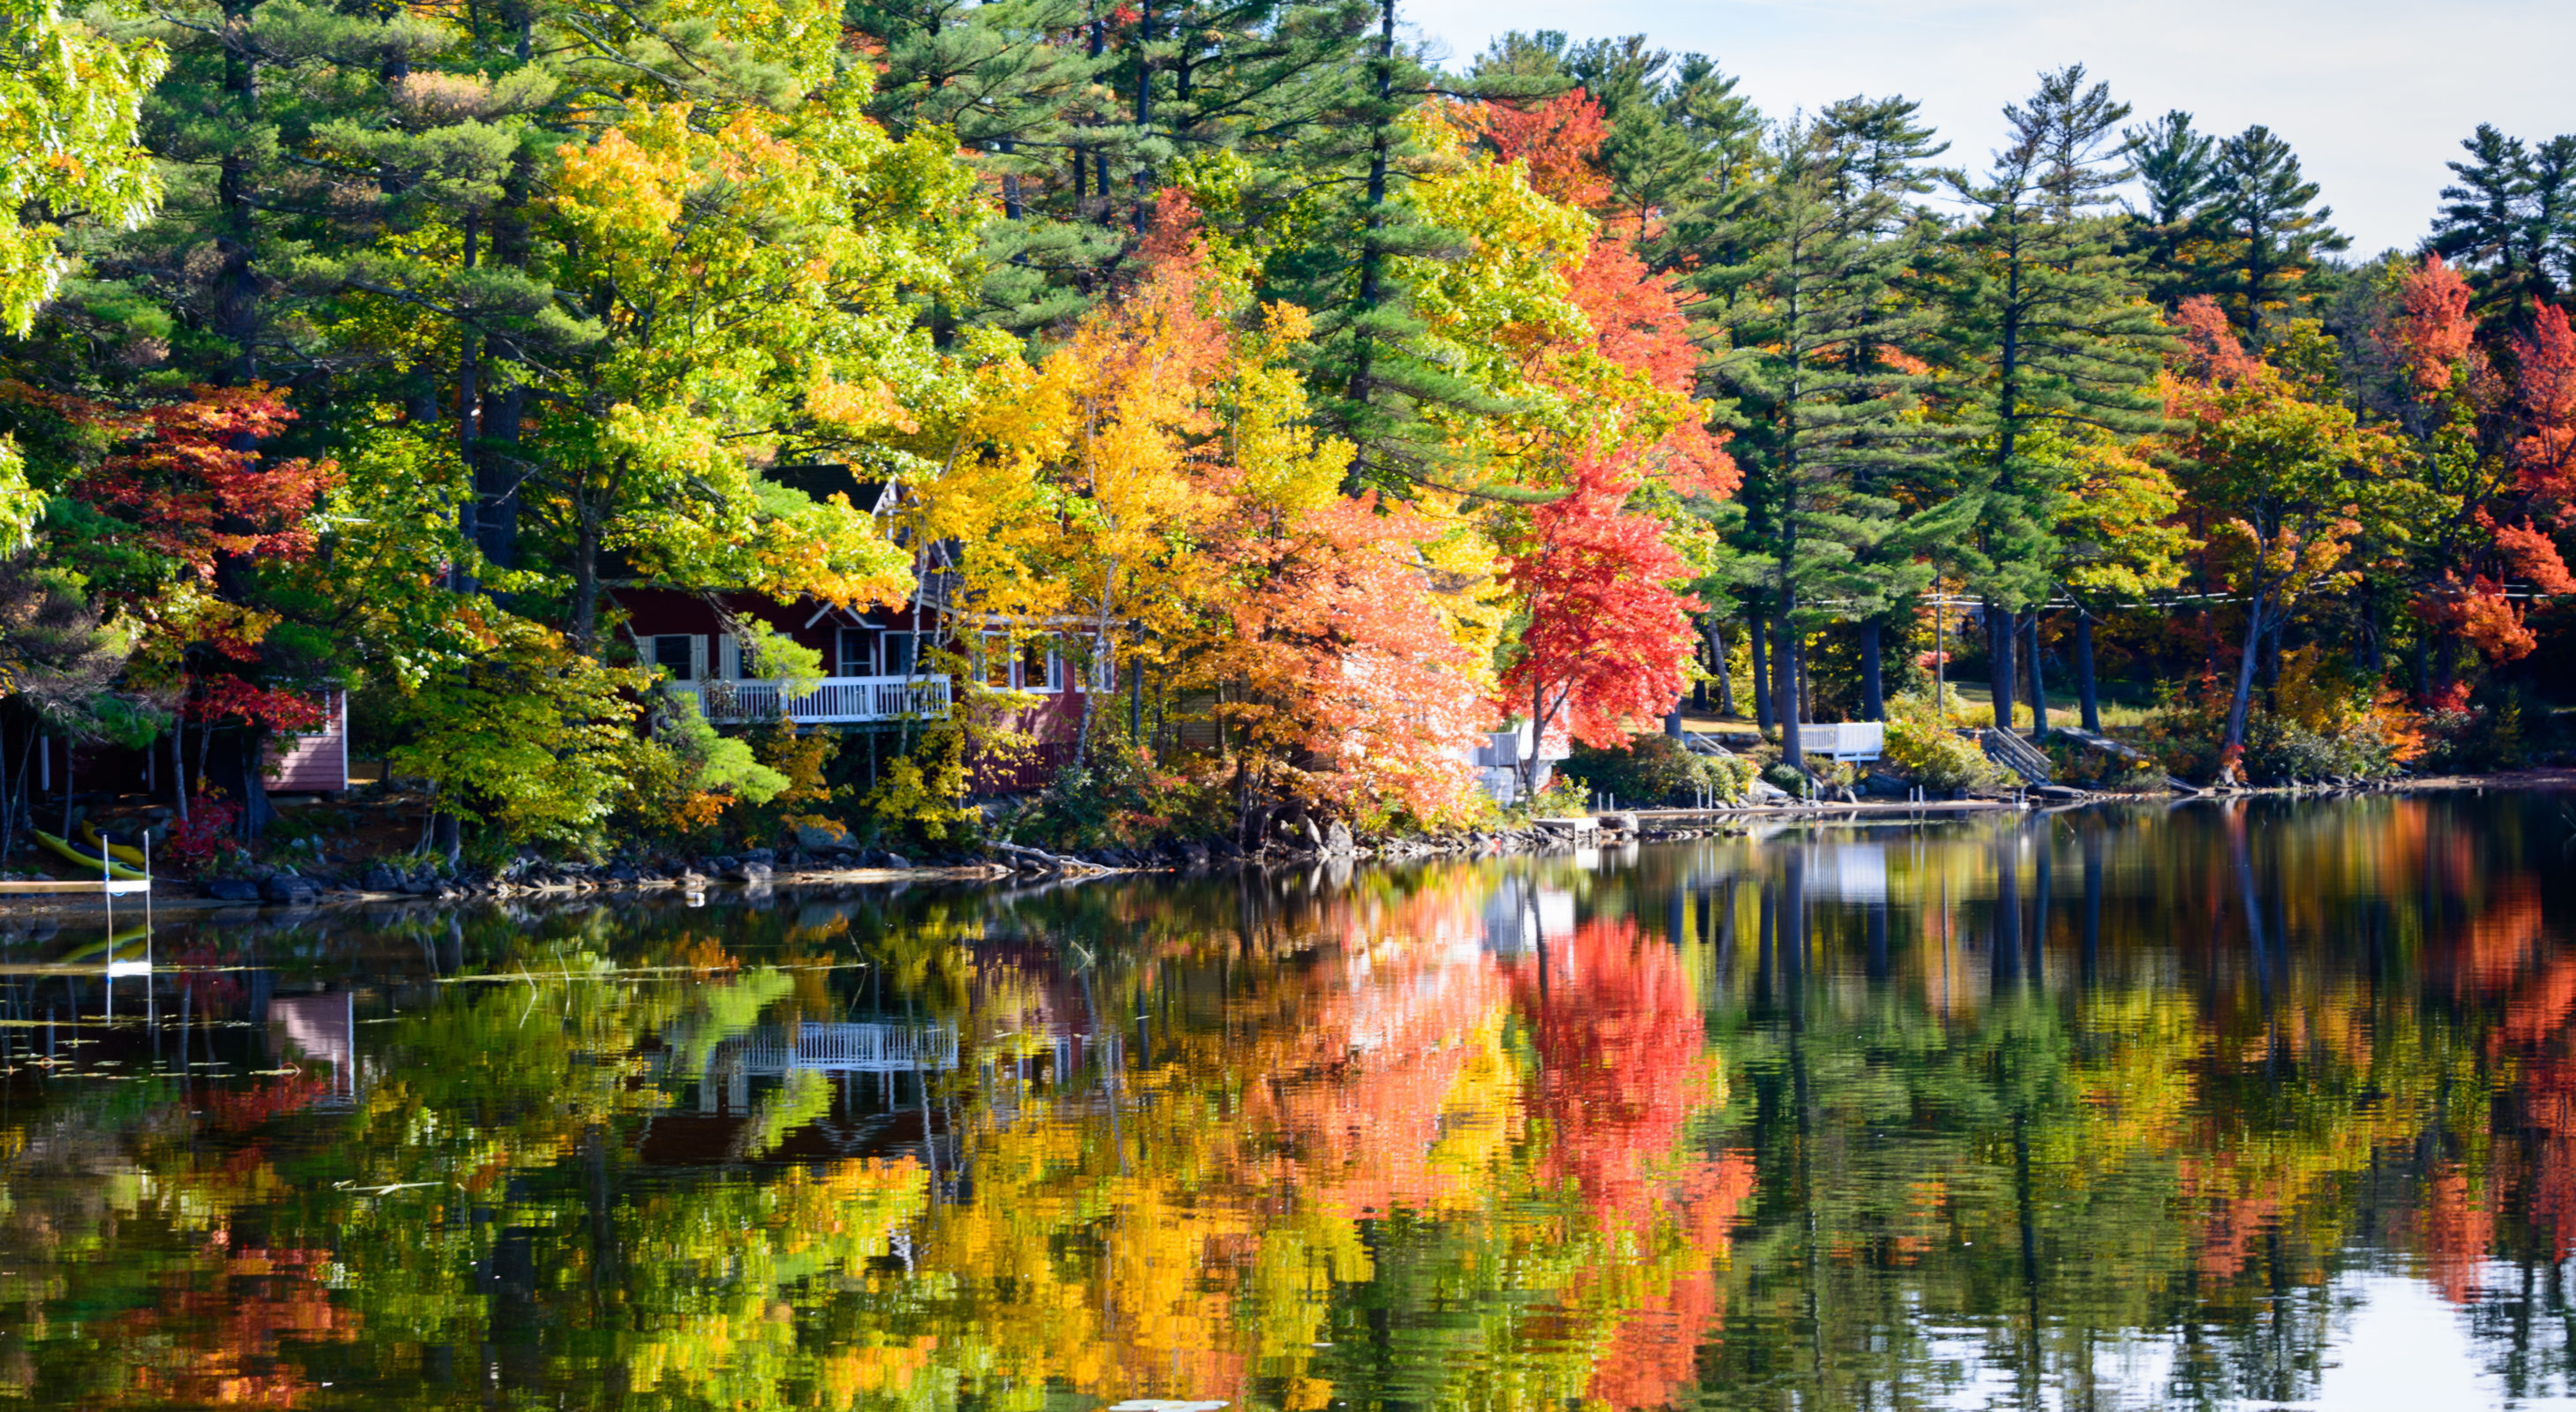 red, yellow, and green foliage reflecting on a lake surface